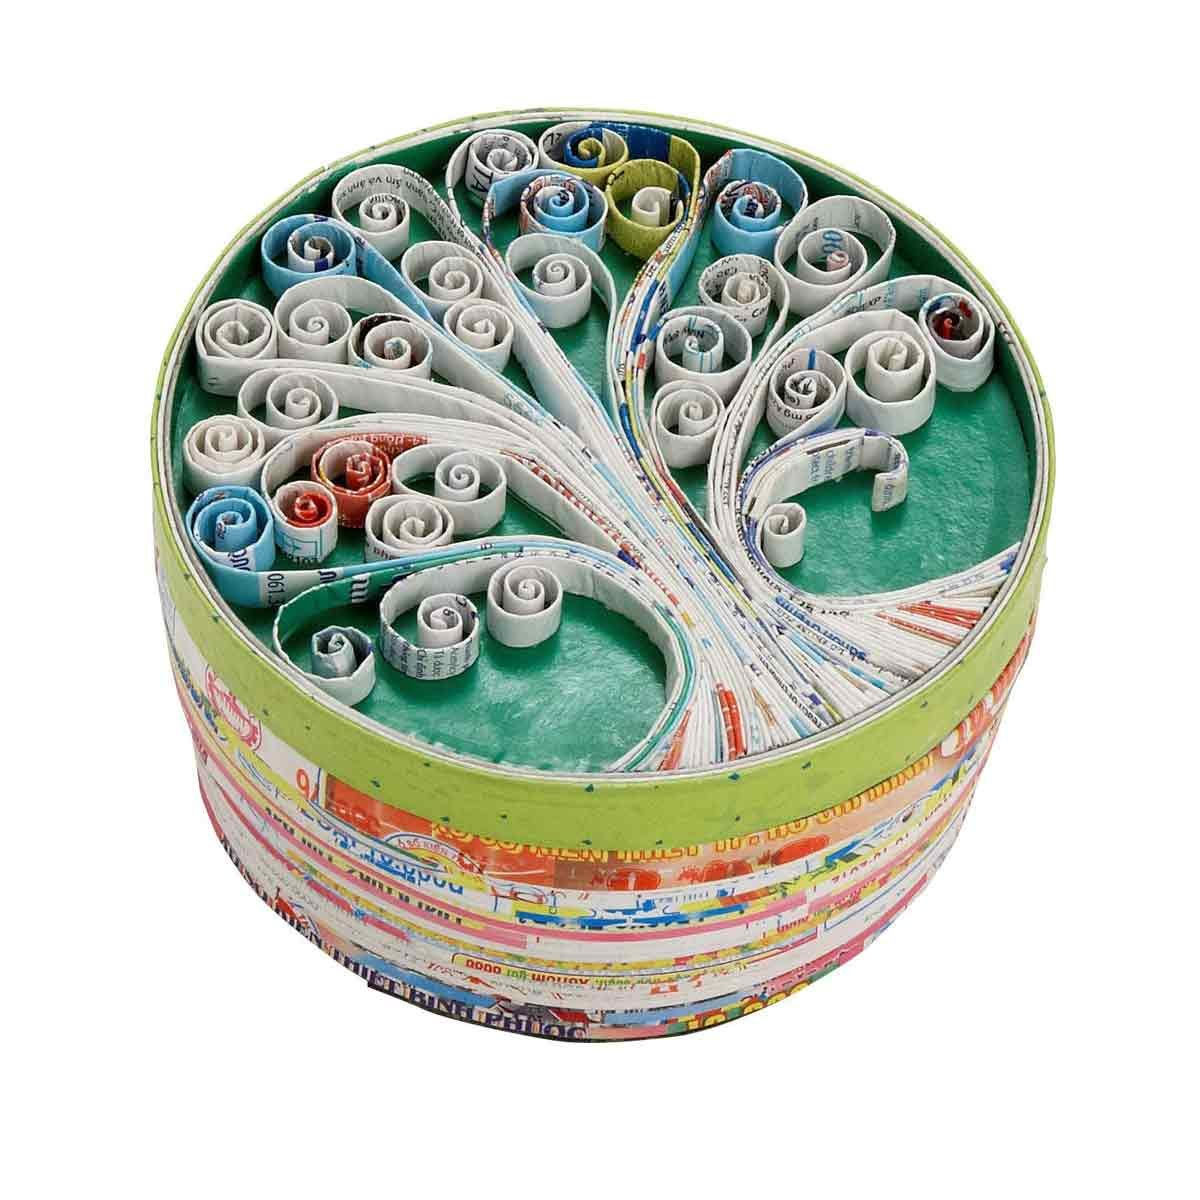 Ten-Thousand-Villages-Round-Tree-Box-Made-From-Recycled-Material